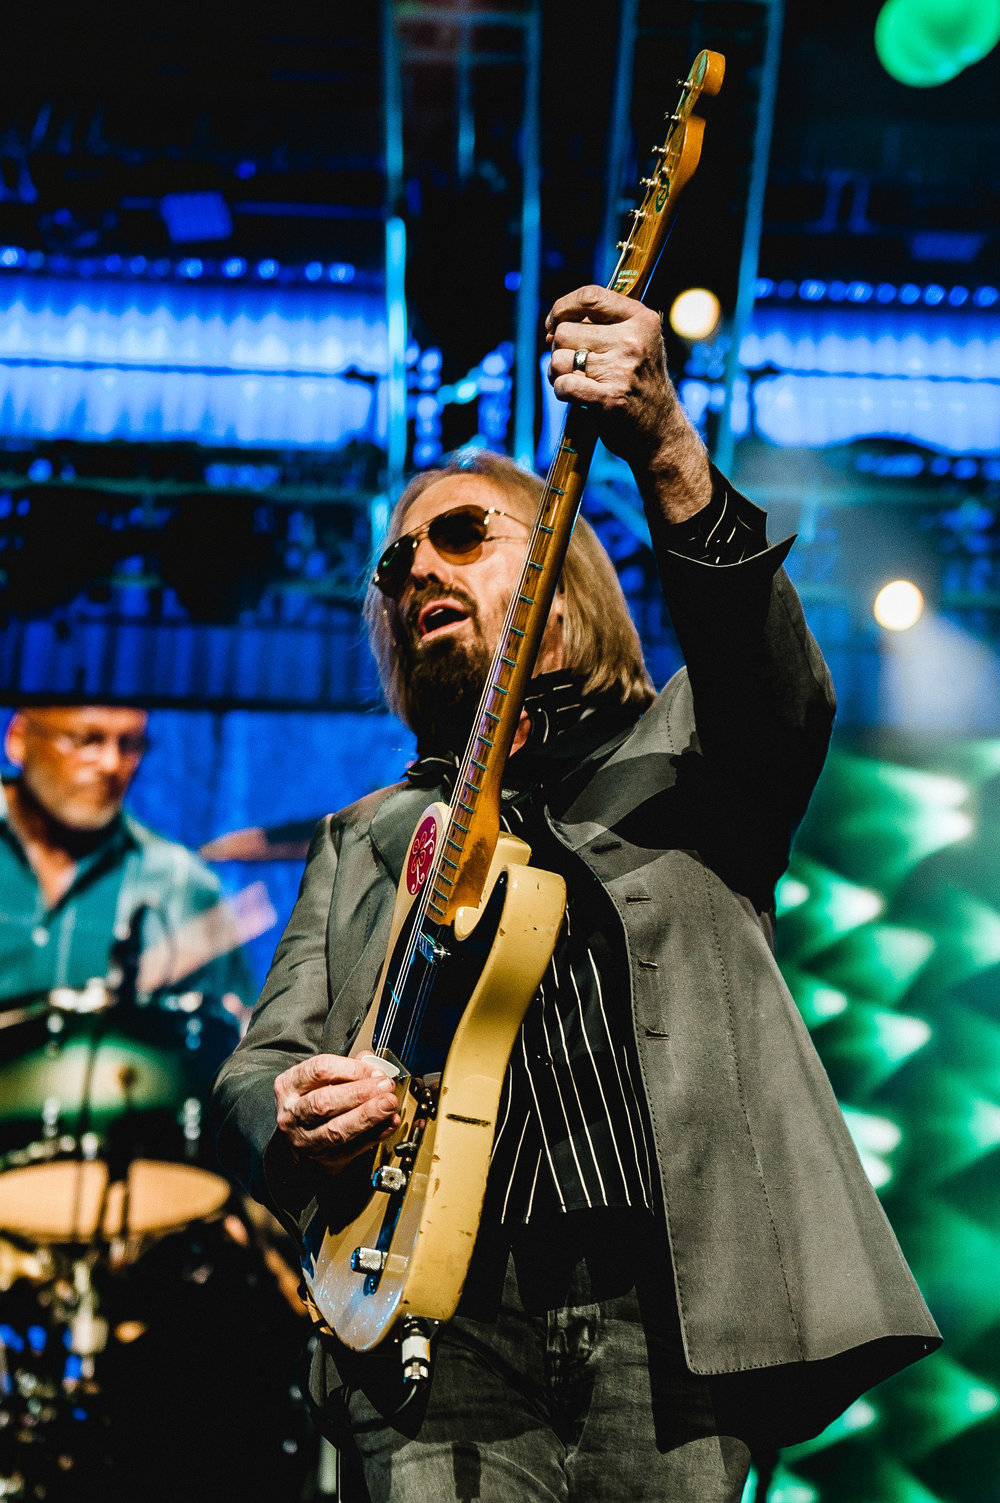 1_Tom_Petty-Rogers_Arena-Timothy_Nguyen-20710817 (25 of 27).jpg